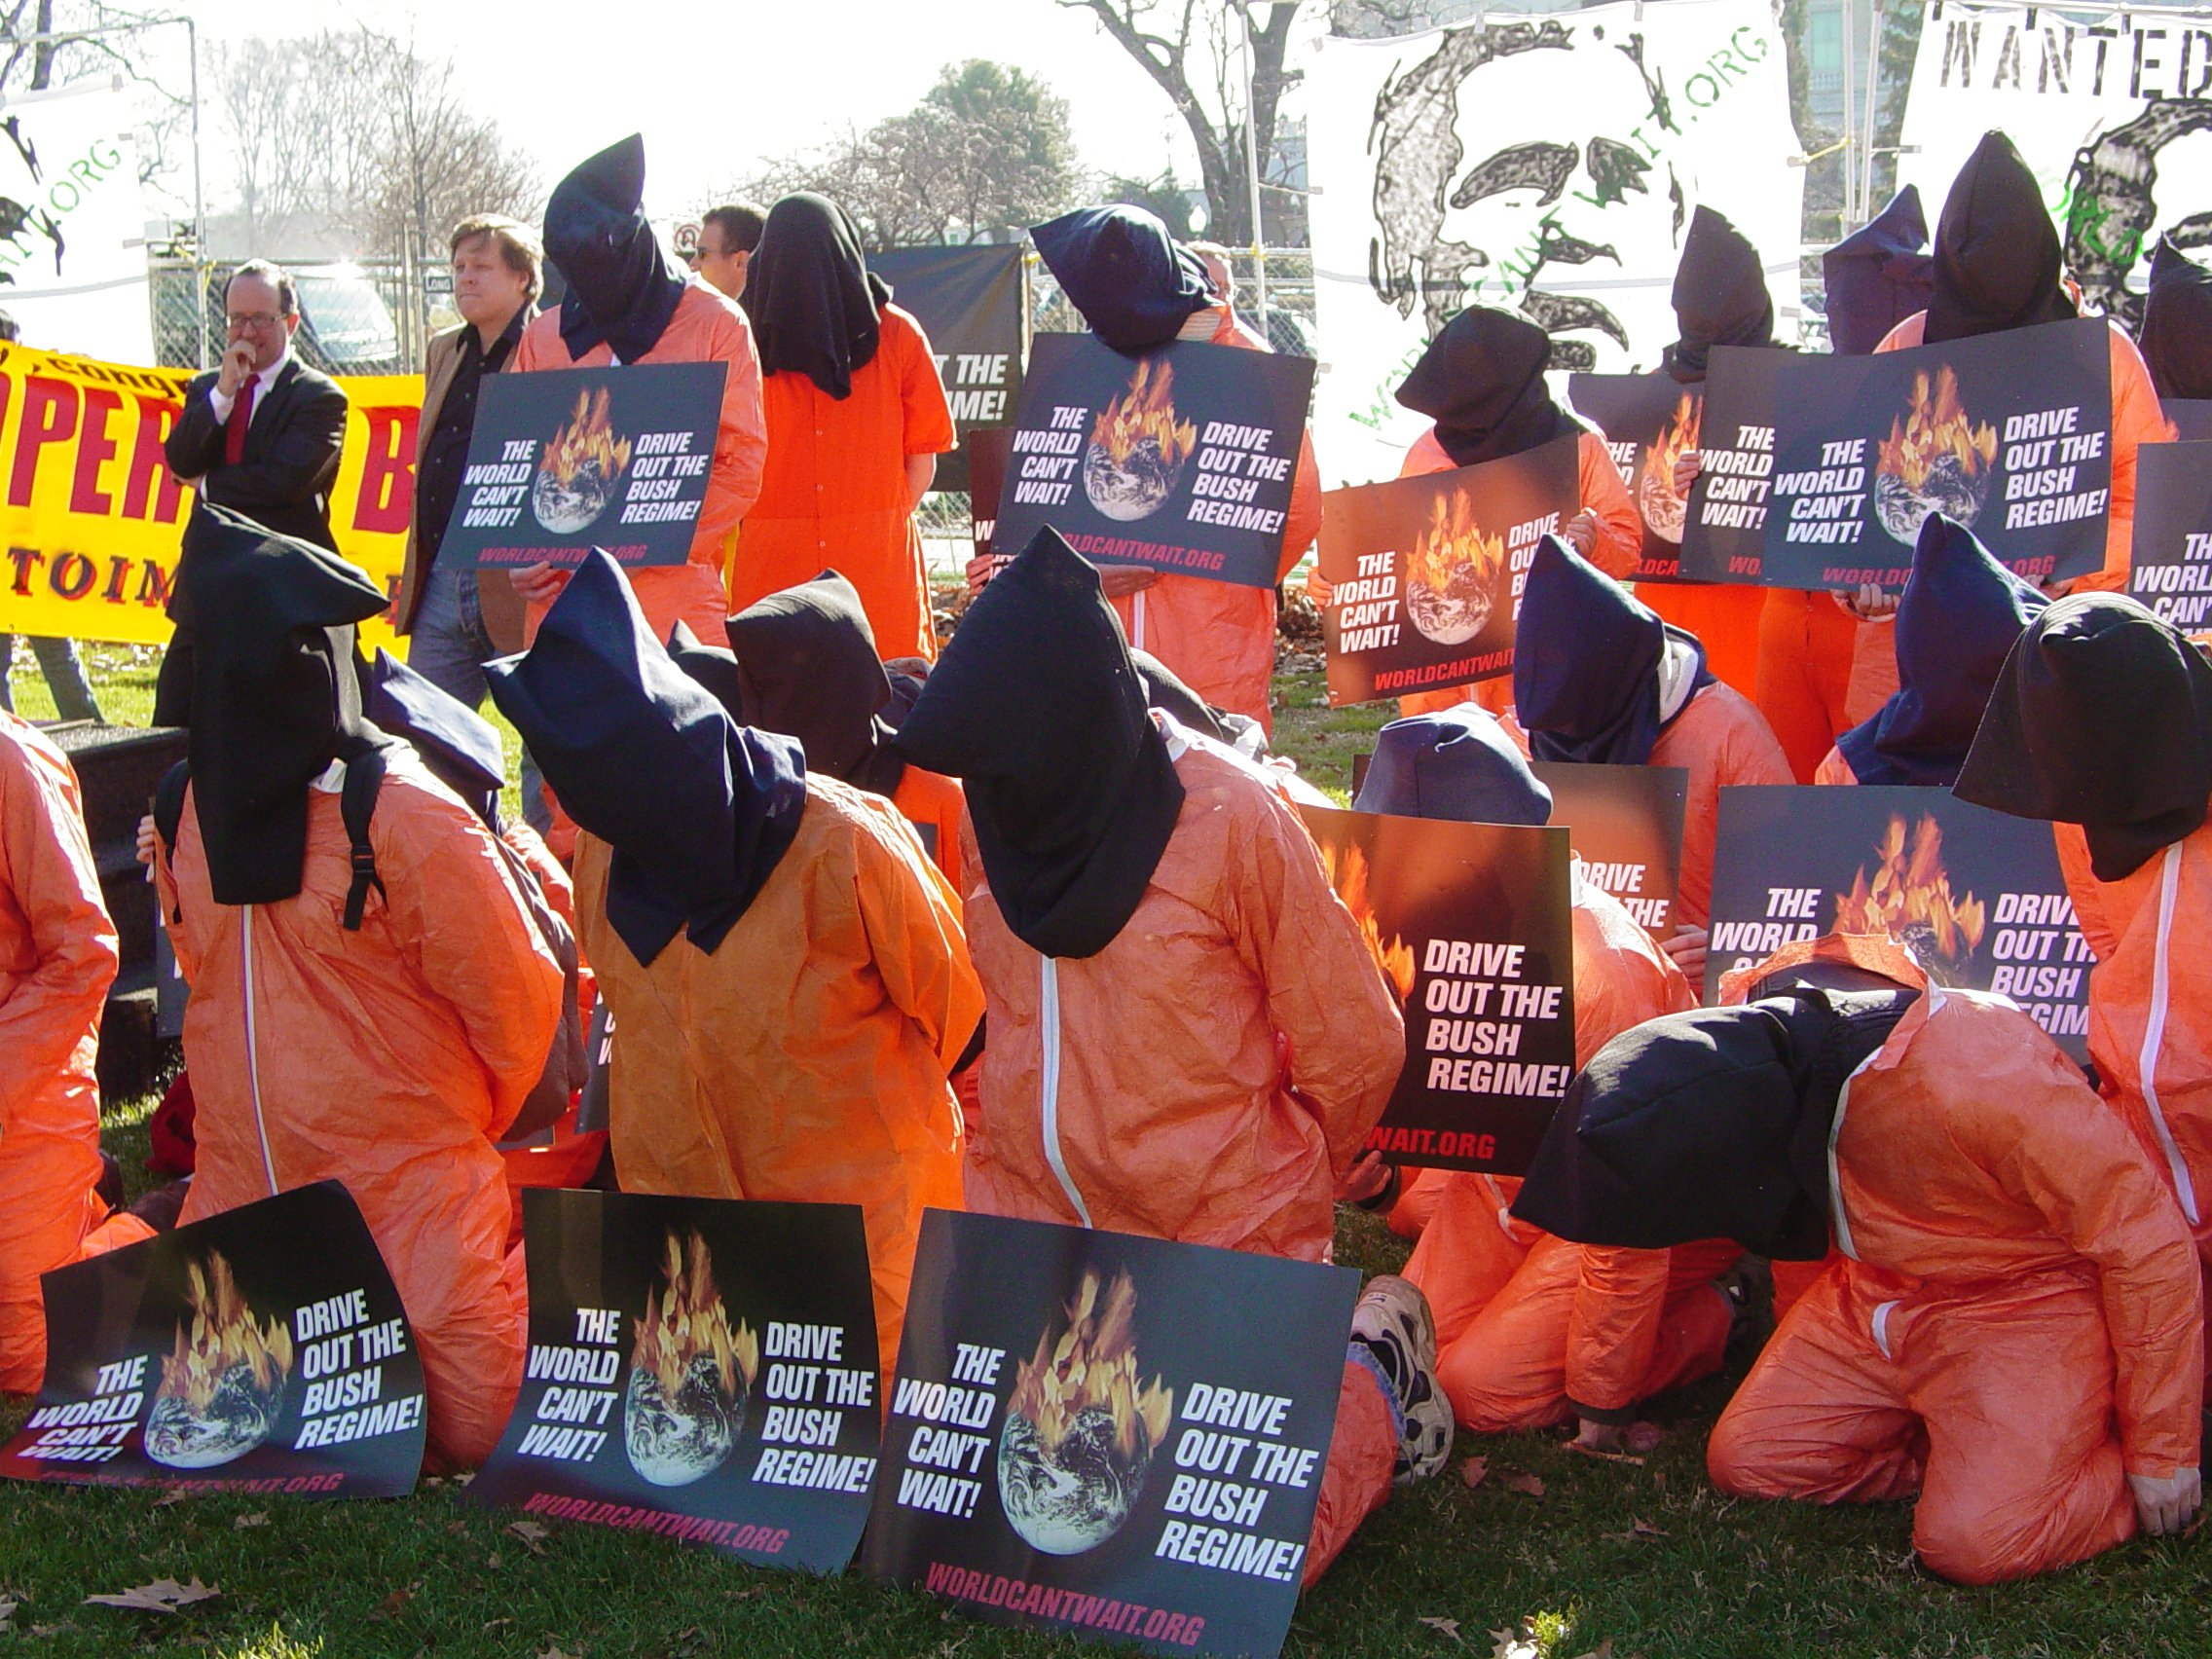 essay on torture of terrorists Nearly two-thirds of americans believe torture can be justified to extract information from suspected terrorists, according to a reuters/ipsos poll, a level of support similar to that seen in countries like nigeria where militant attacks are common.